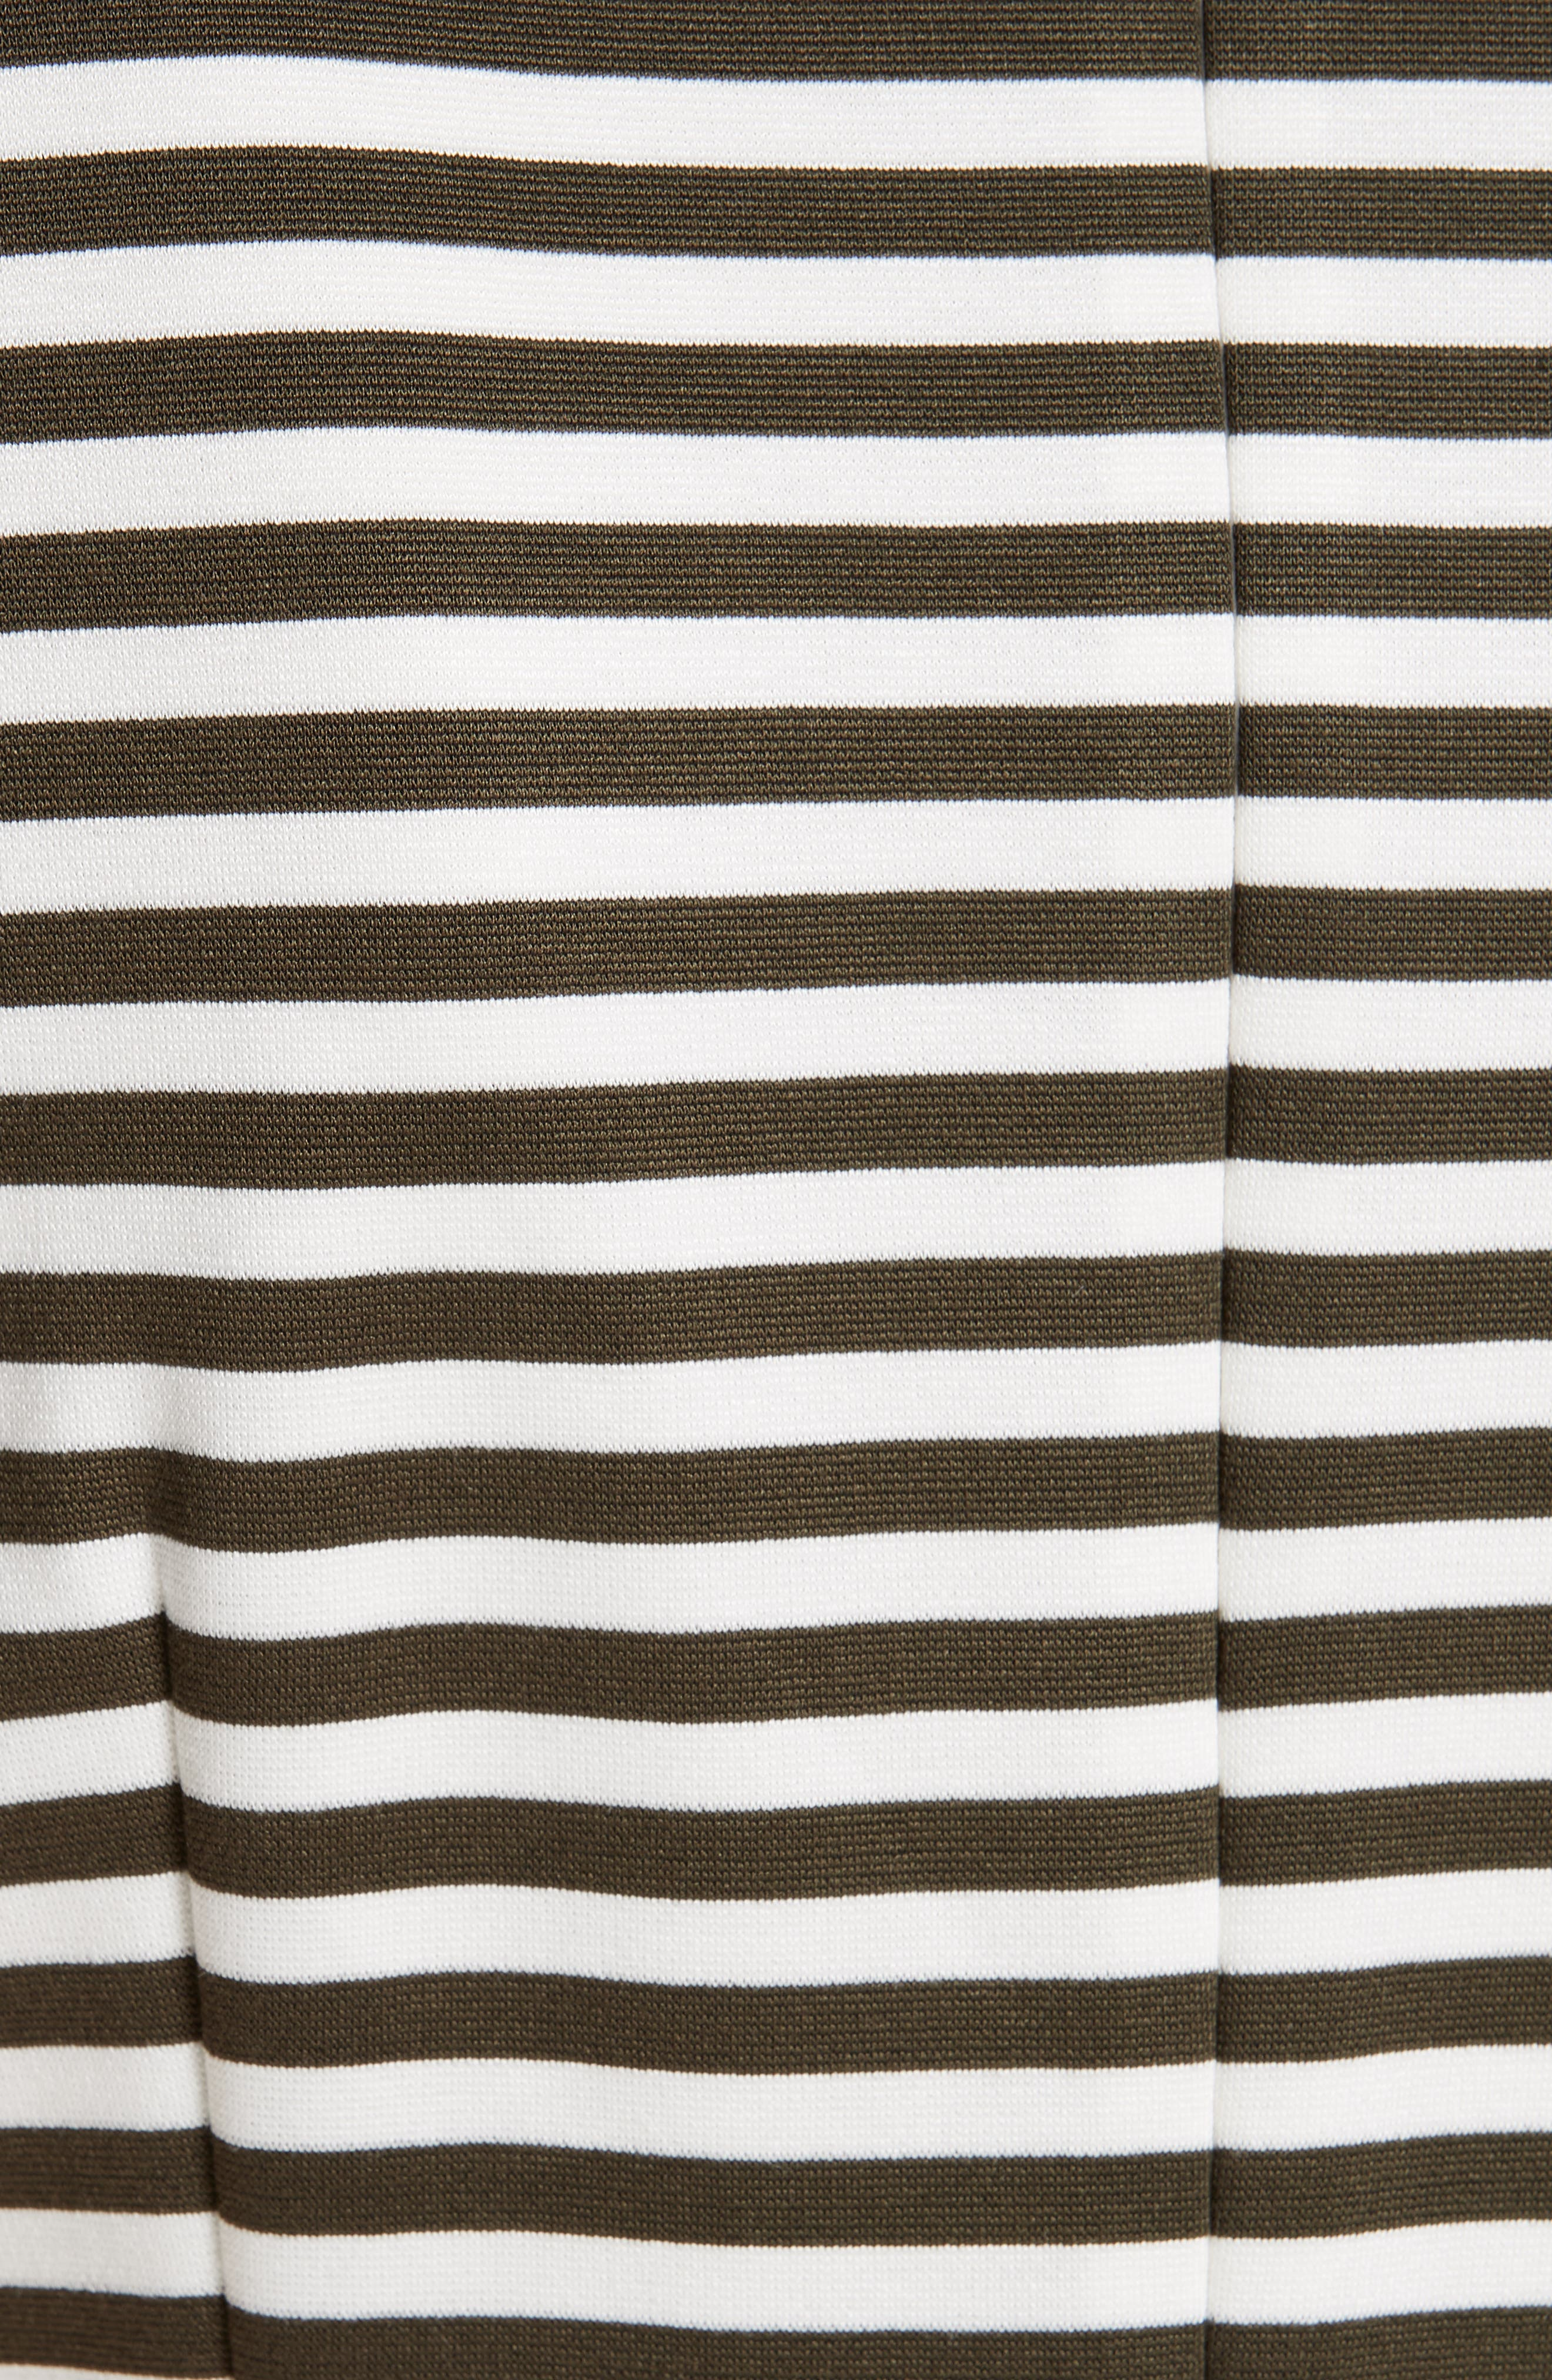 MAX MARA, Comica Stripe Dress, Alternate thumbnail 6, color, KAKI